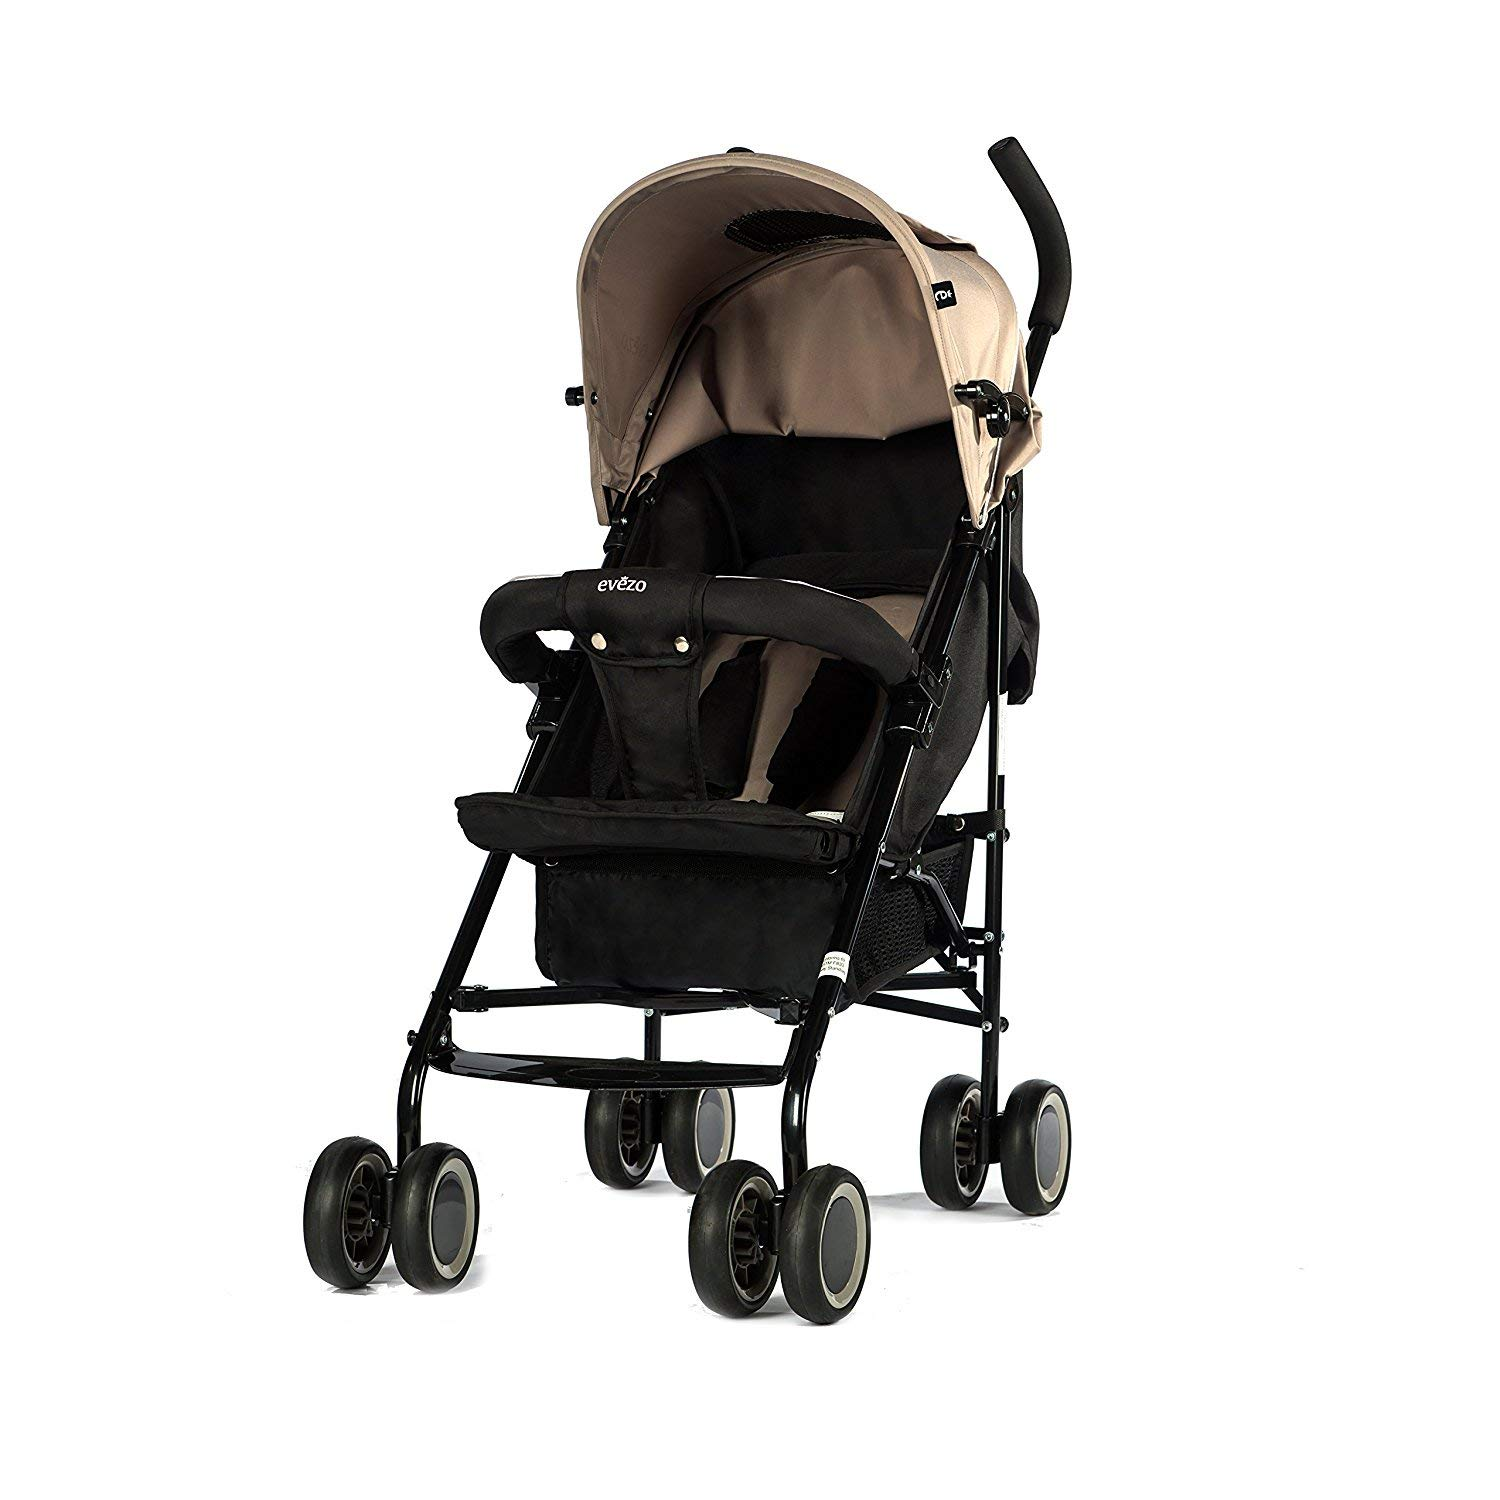 Evezo 2141A Full-Size Ultra Lightweight Umbrella Stroller, Reclining Seat, 5-Point Safety Harness, Canopy, Storage Bin (Taupe Gray) (214-1A)